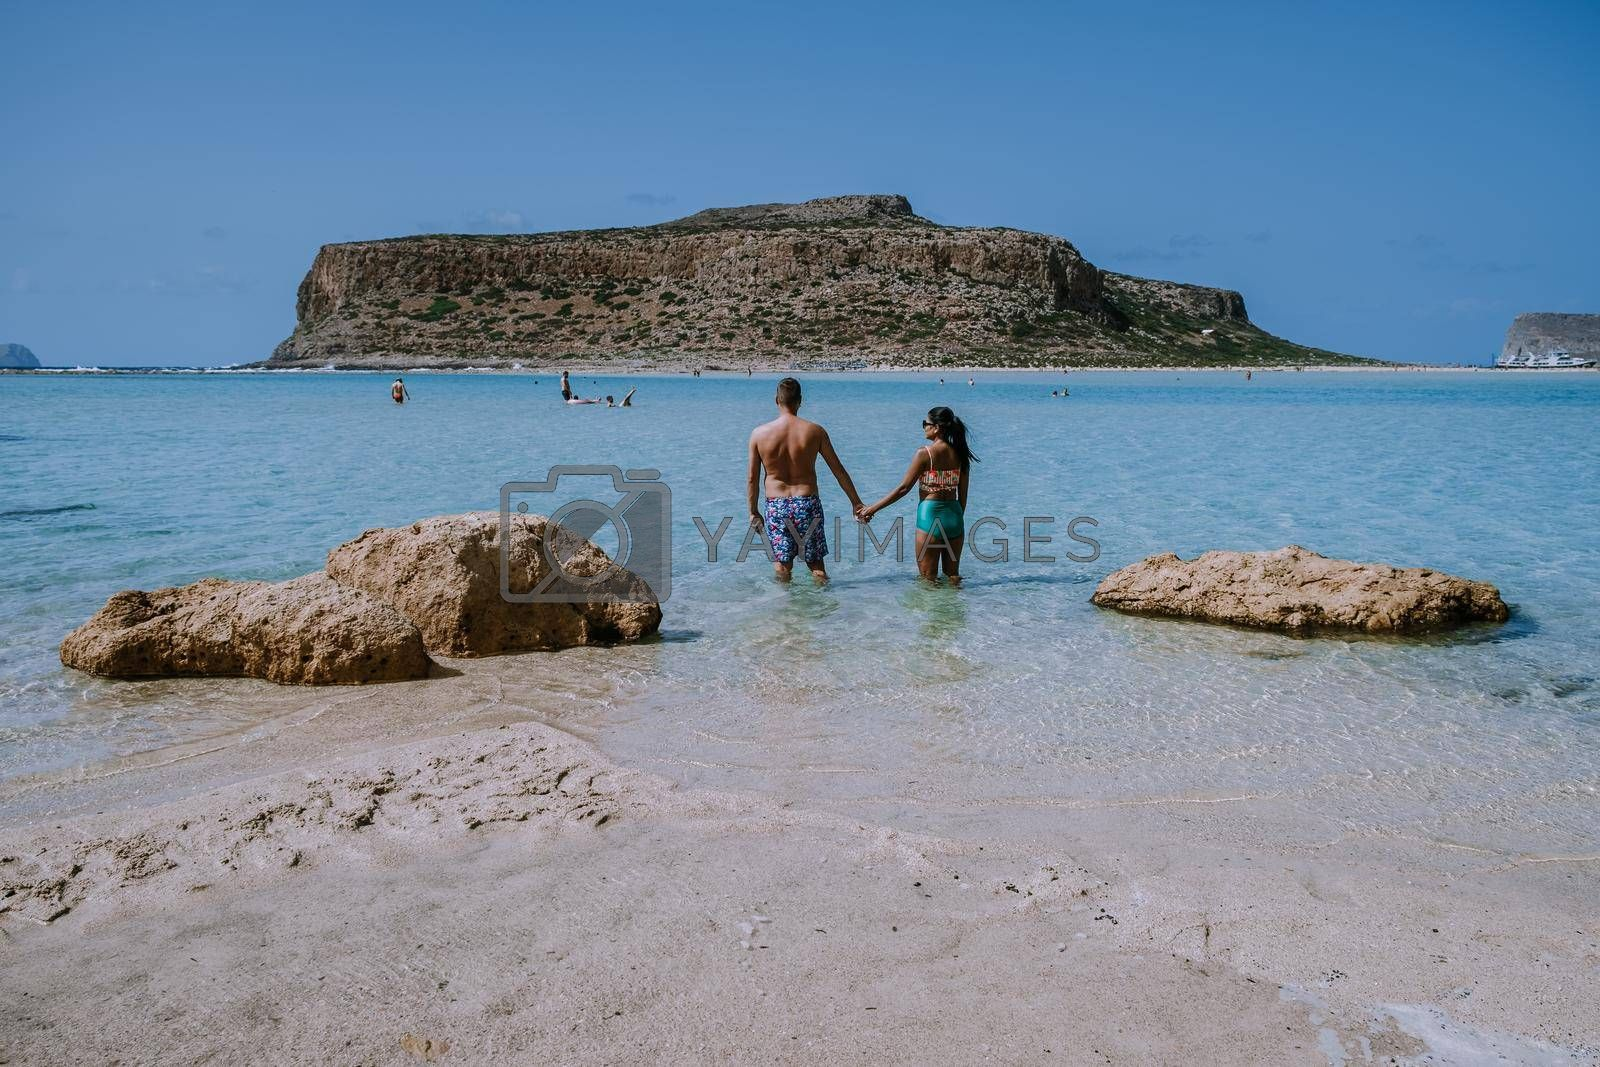 Balos Beach Cret Greece, Balos beach is on of the most beautiful beaches in Greece at the Greek Island couple visit the beach during vacation holiday in Greece